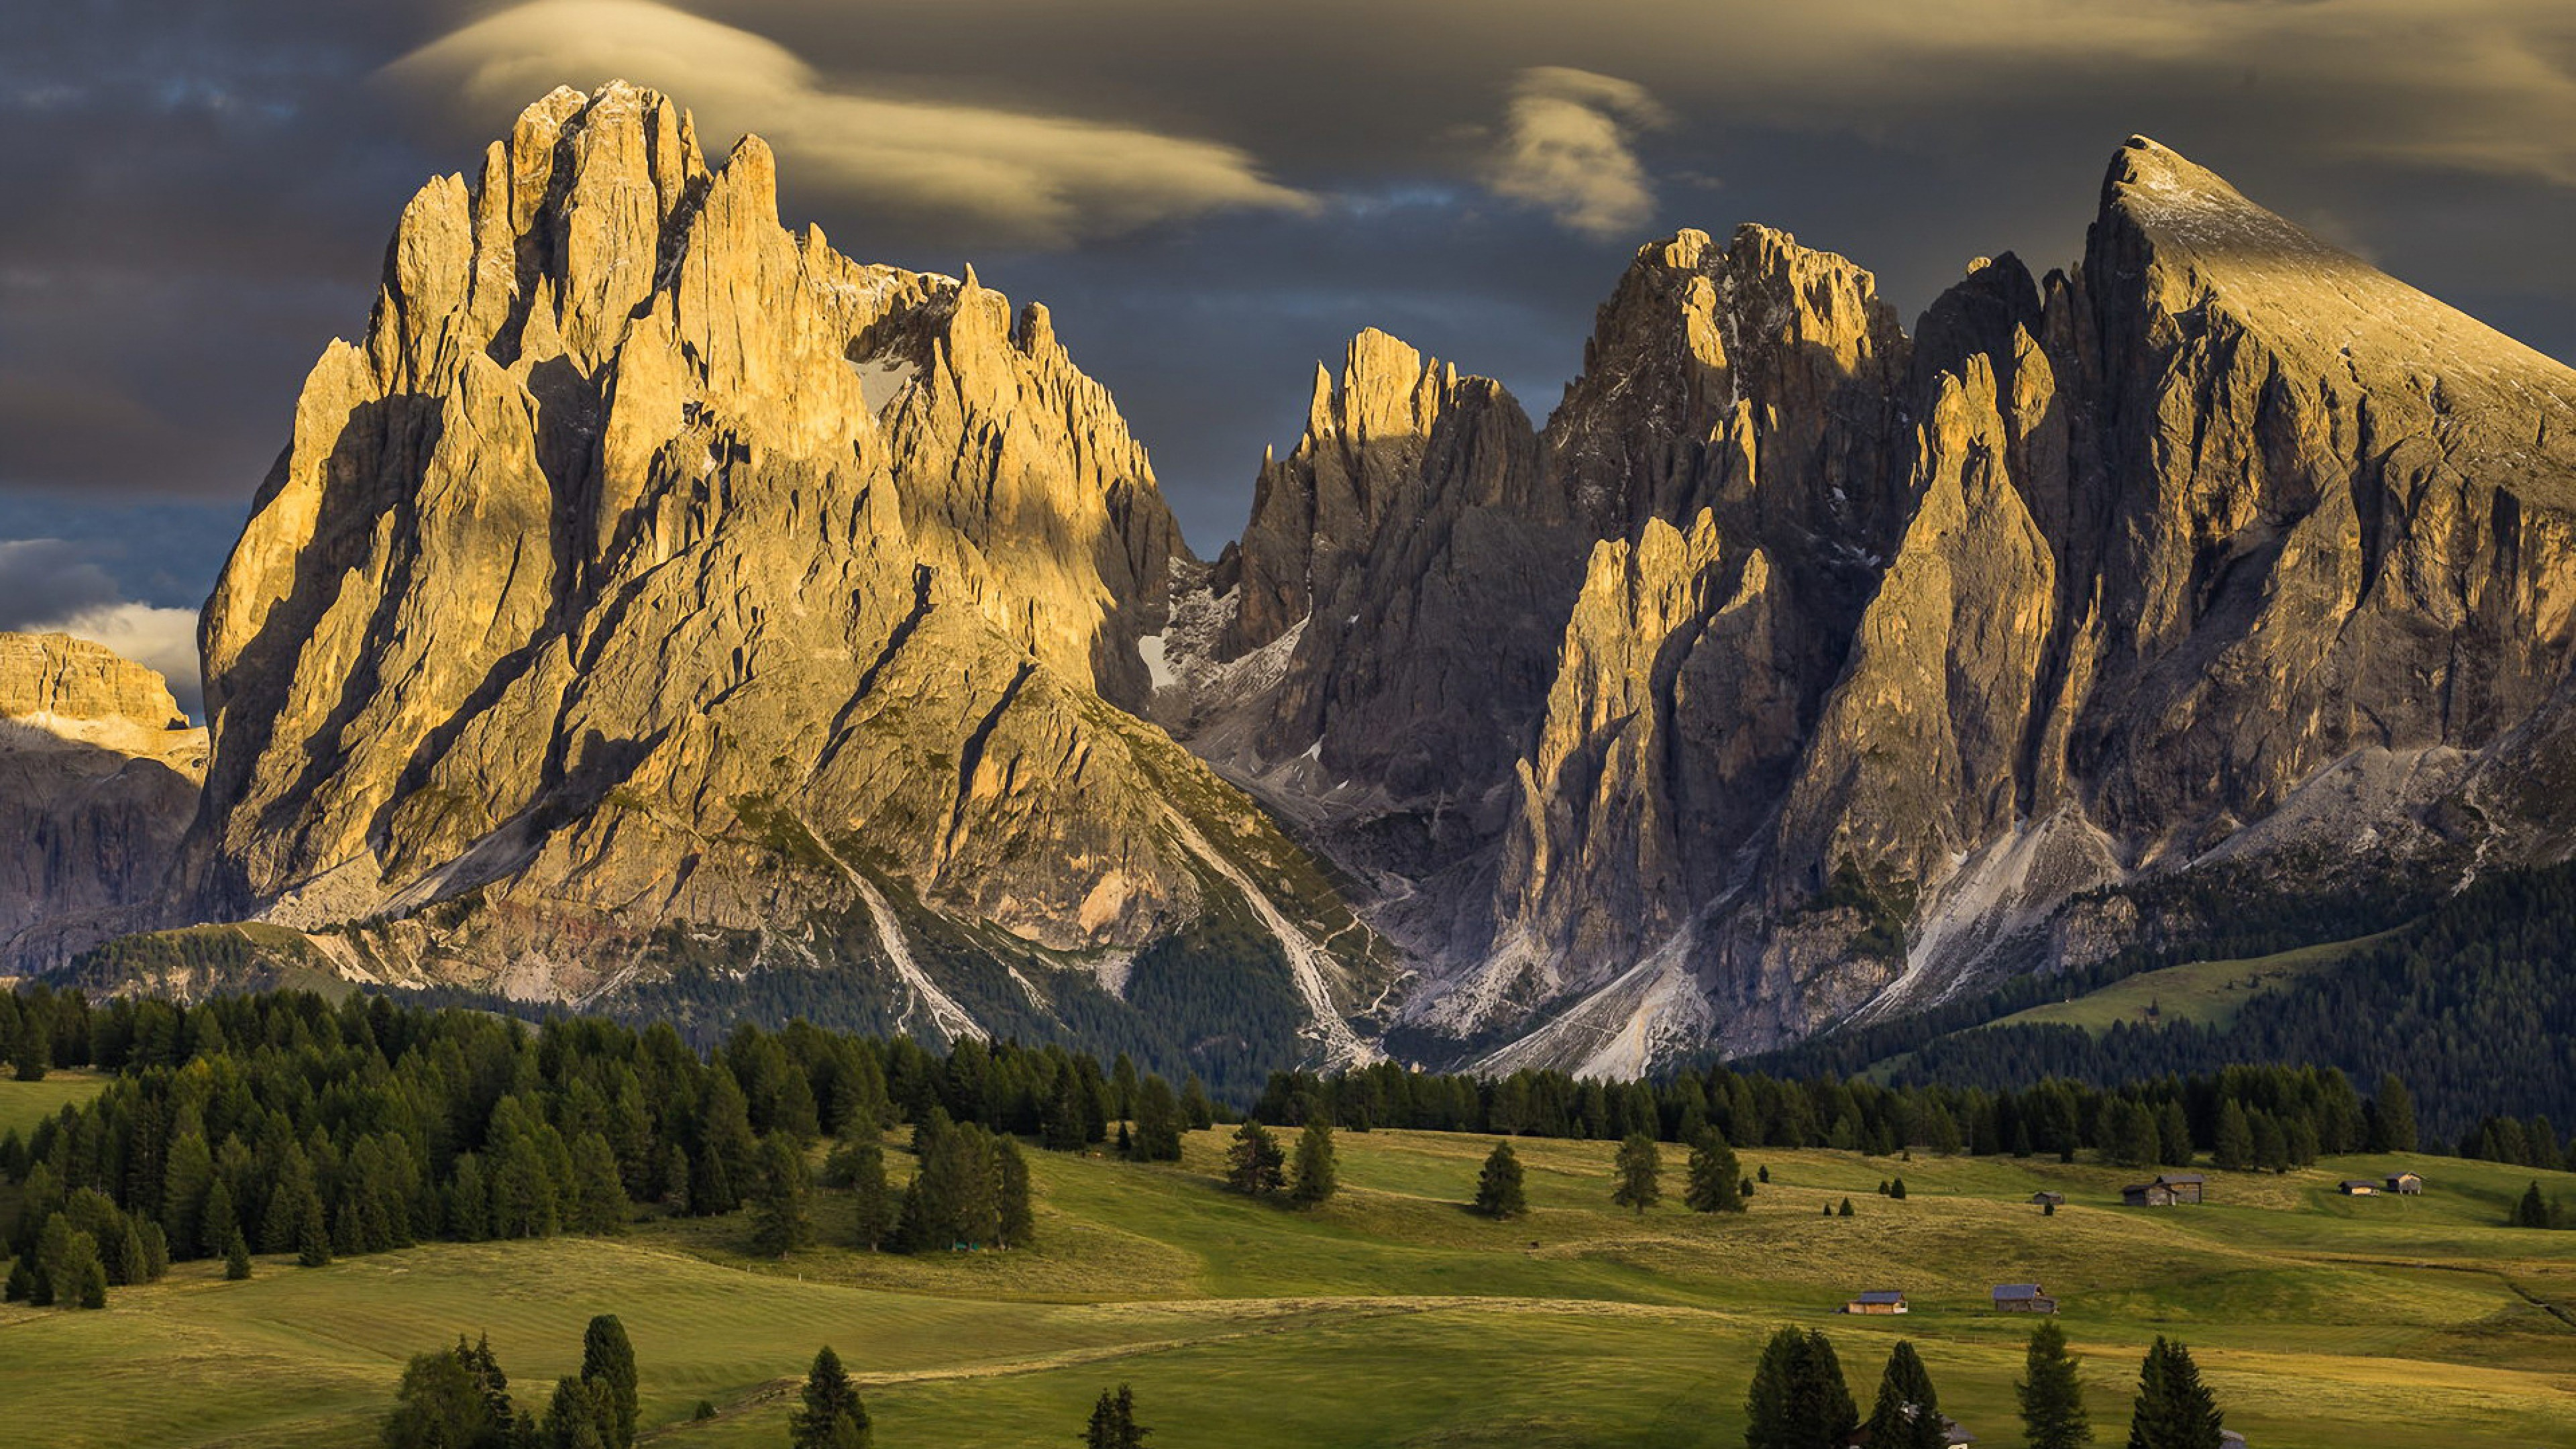 alpe_di_siusi_italy_nature_mountains_dolomites_94940_3840x2160